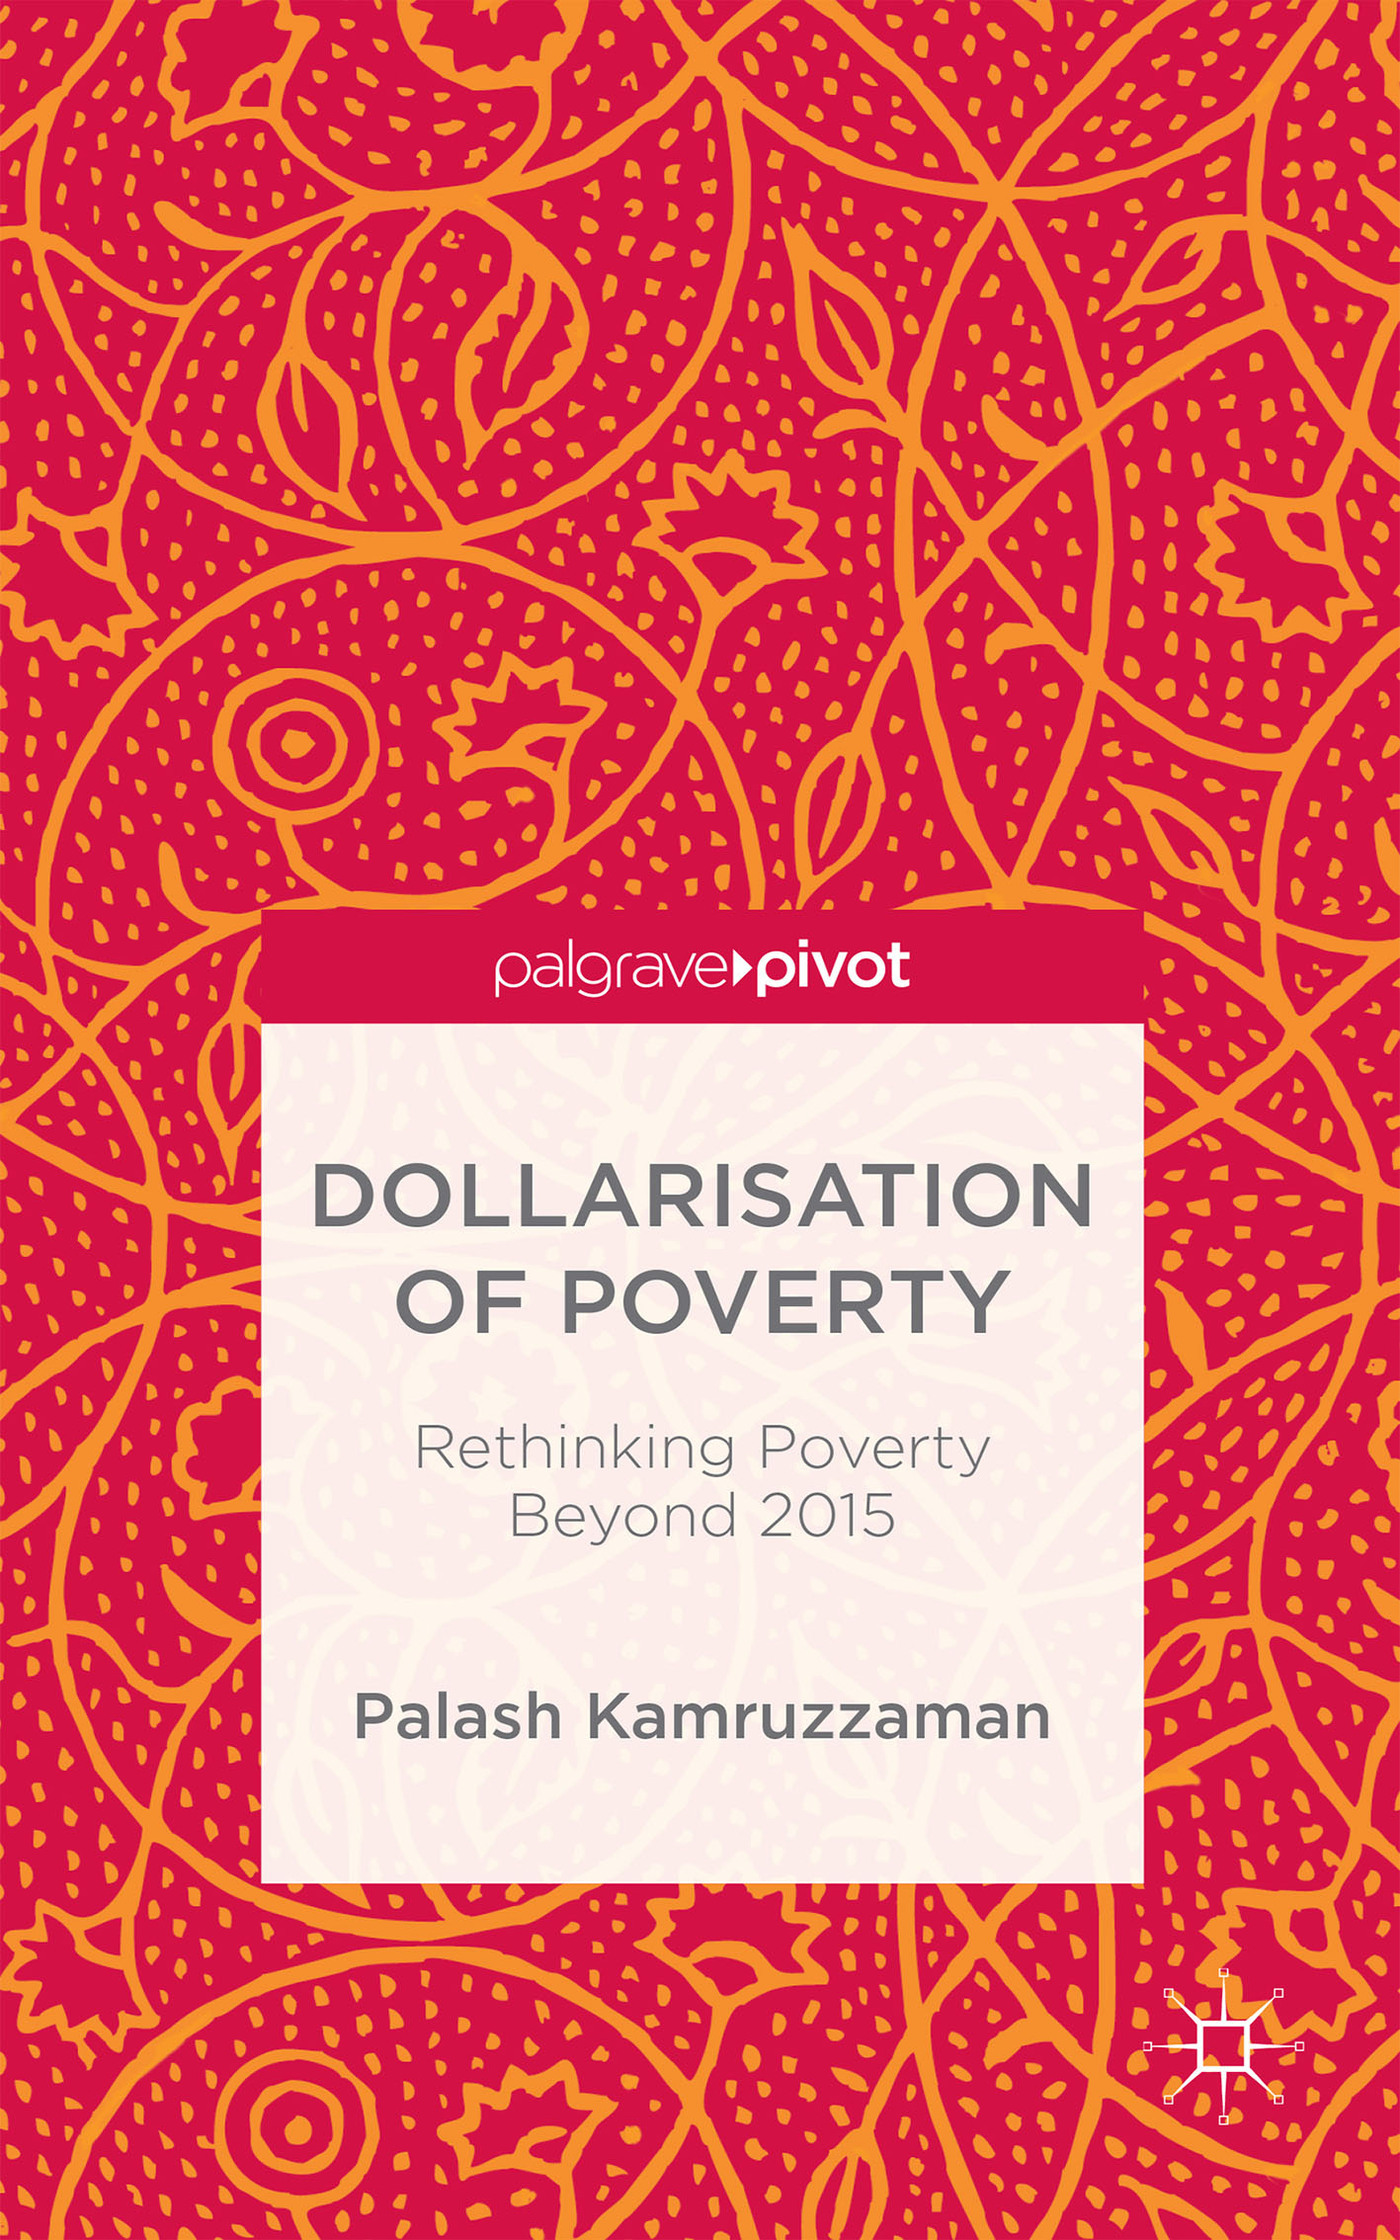 Dollarisation of Poverty Rethinking Poverty Beyond 2015